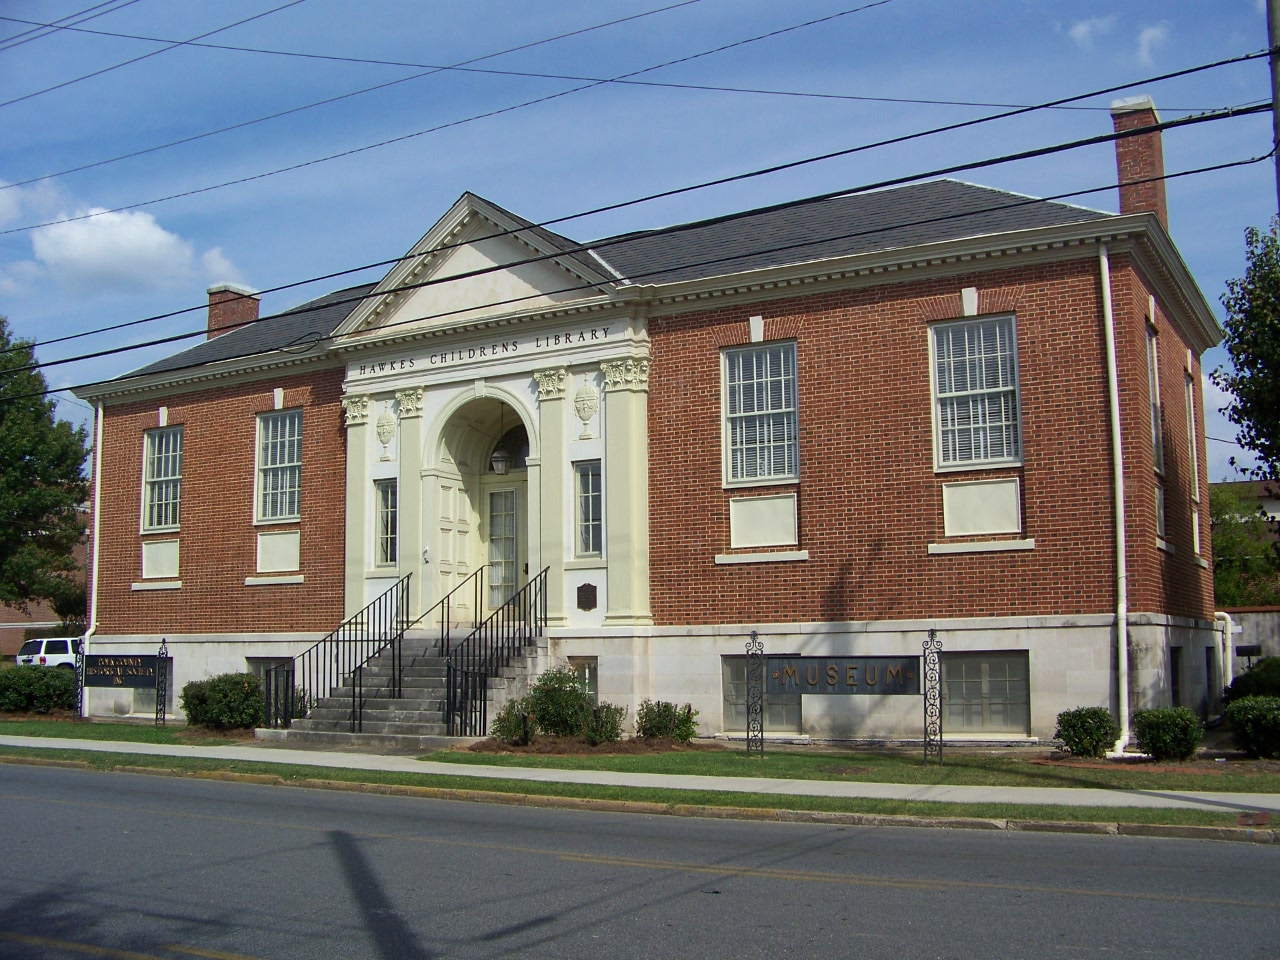 The Polk County Historical Society, formerly the Hawkes Children's Library